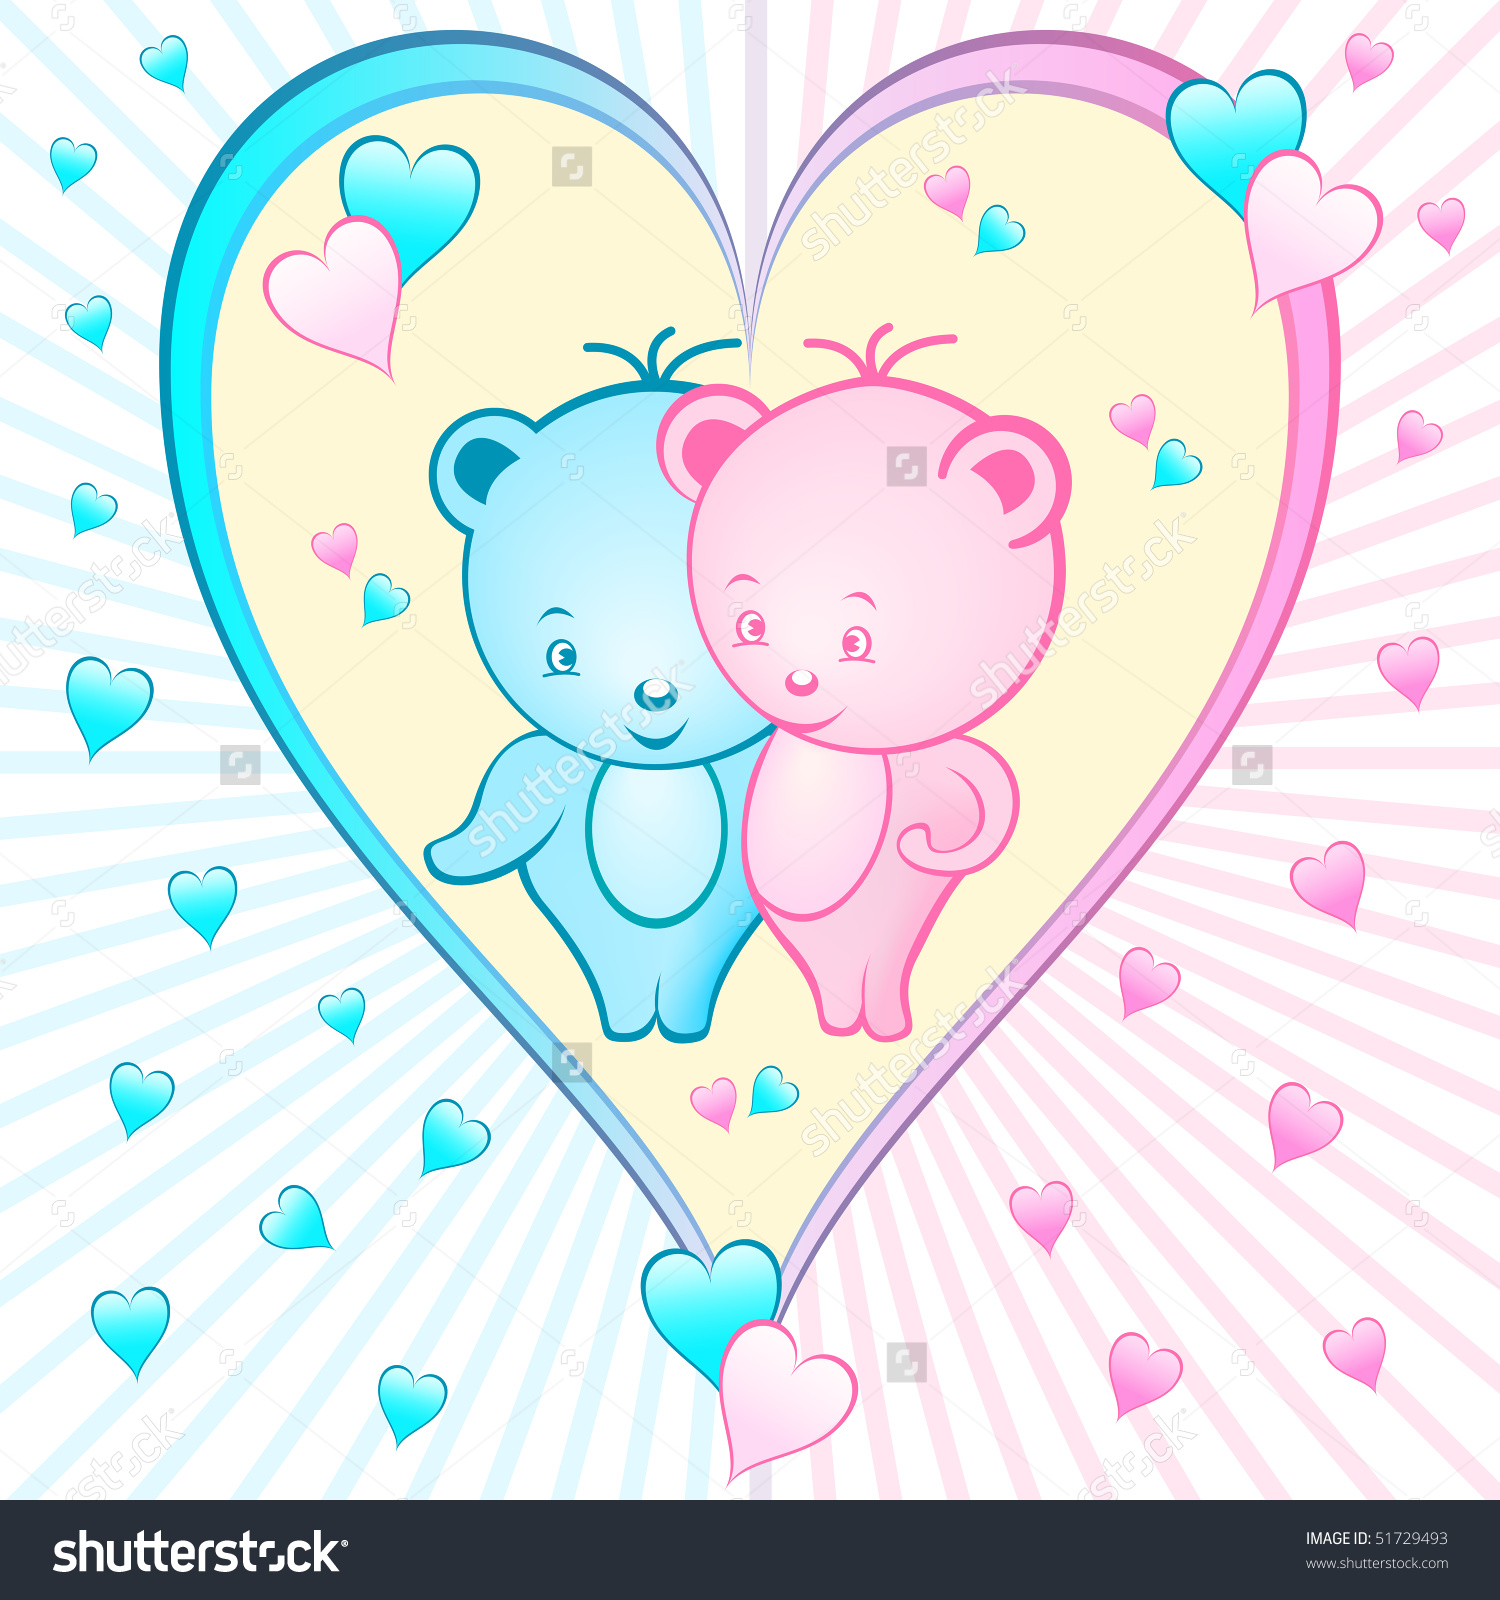 Cute hearts clipart blue image free Cute Bear Cartoon Characters Set Inside Stock Vector 51729493 ... image free